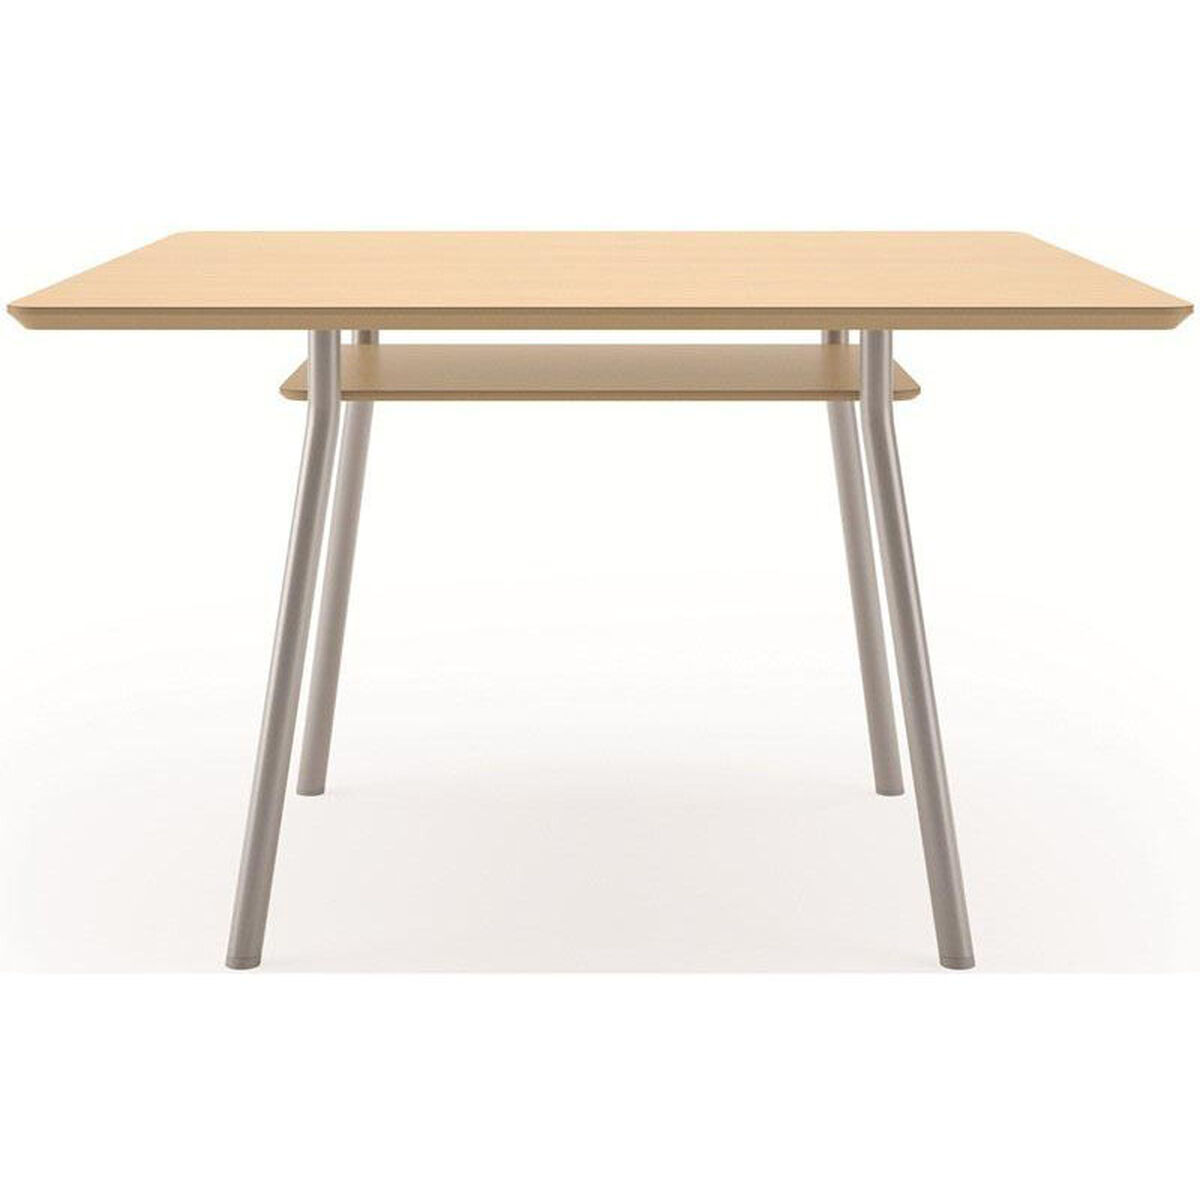 Square conference table and shelf mt1748k4 bizchair our mystic series 48 square conference table with shelf is on sale now watchthetrailerfo